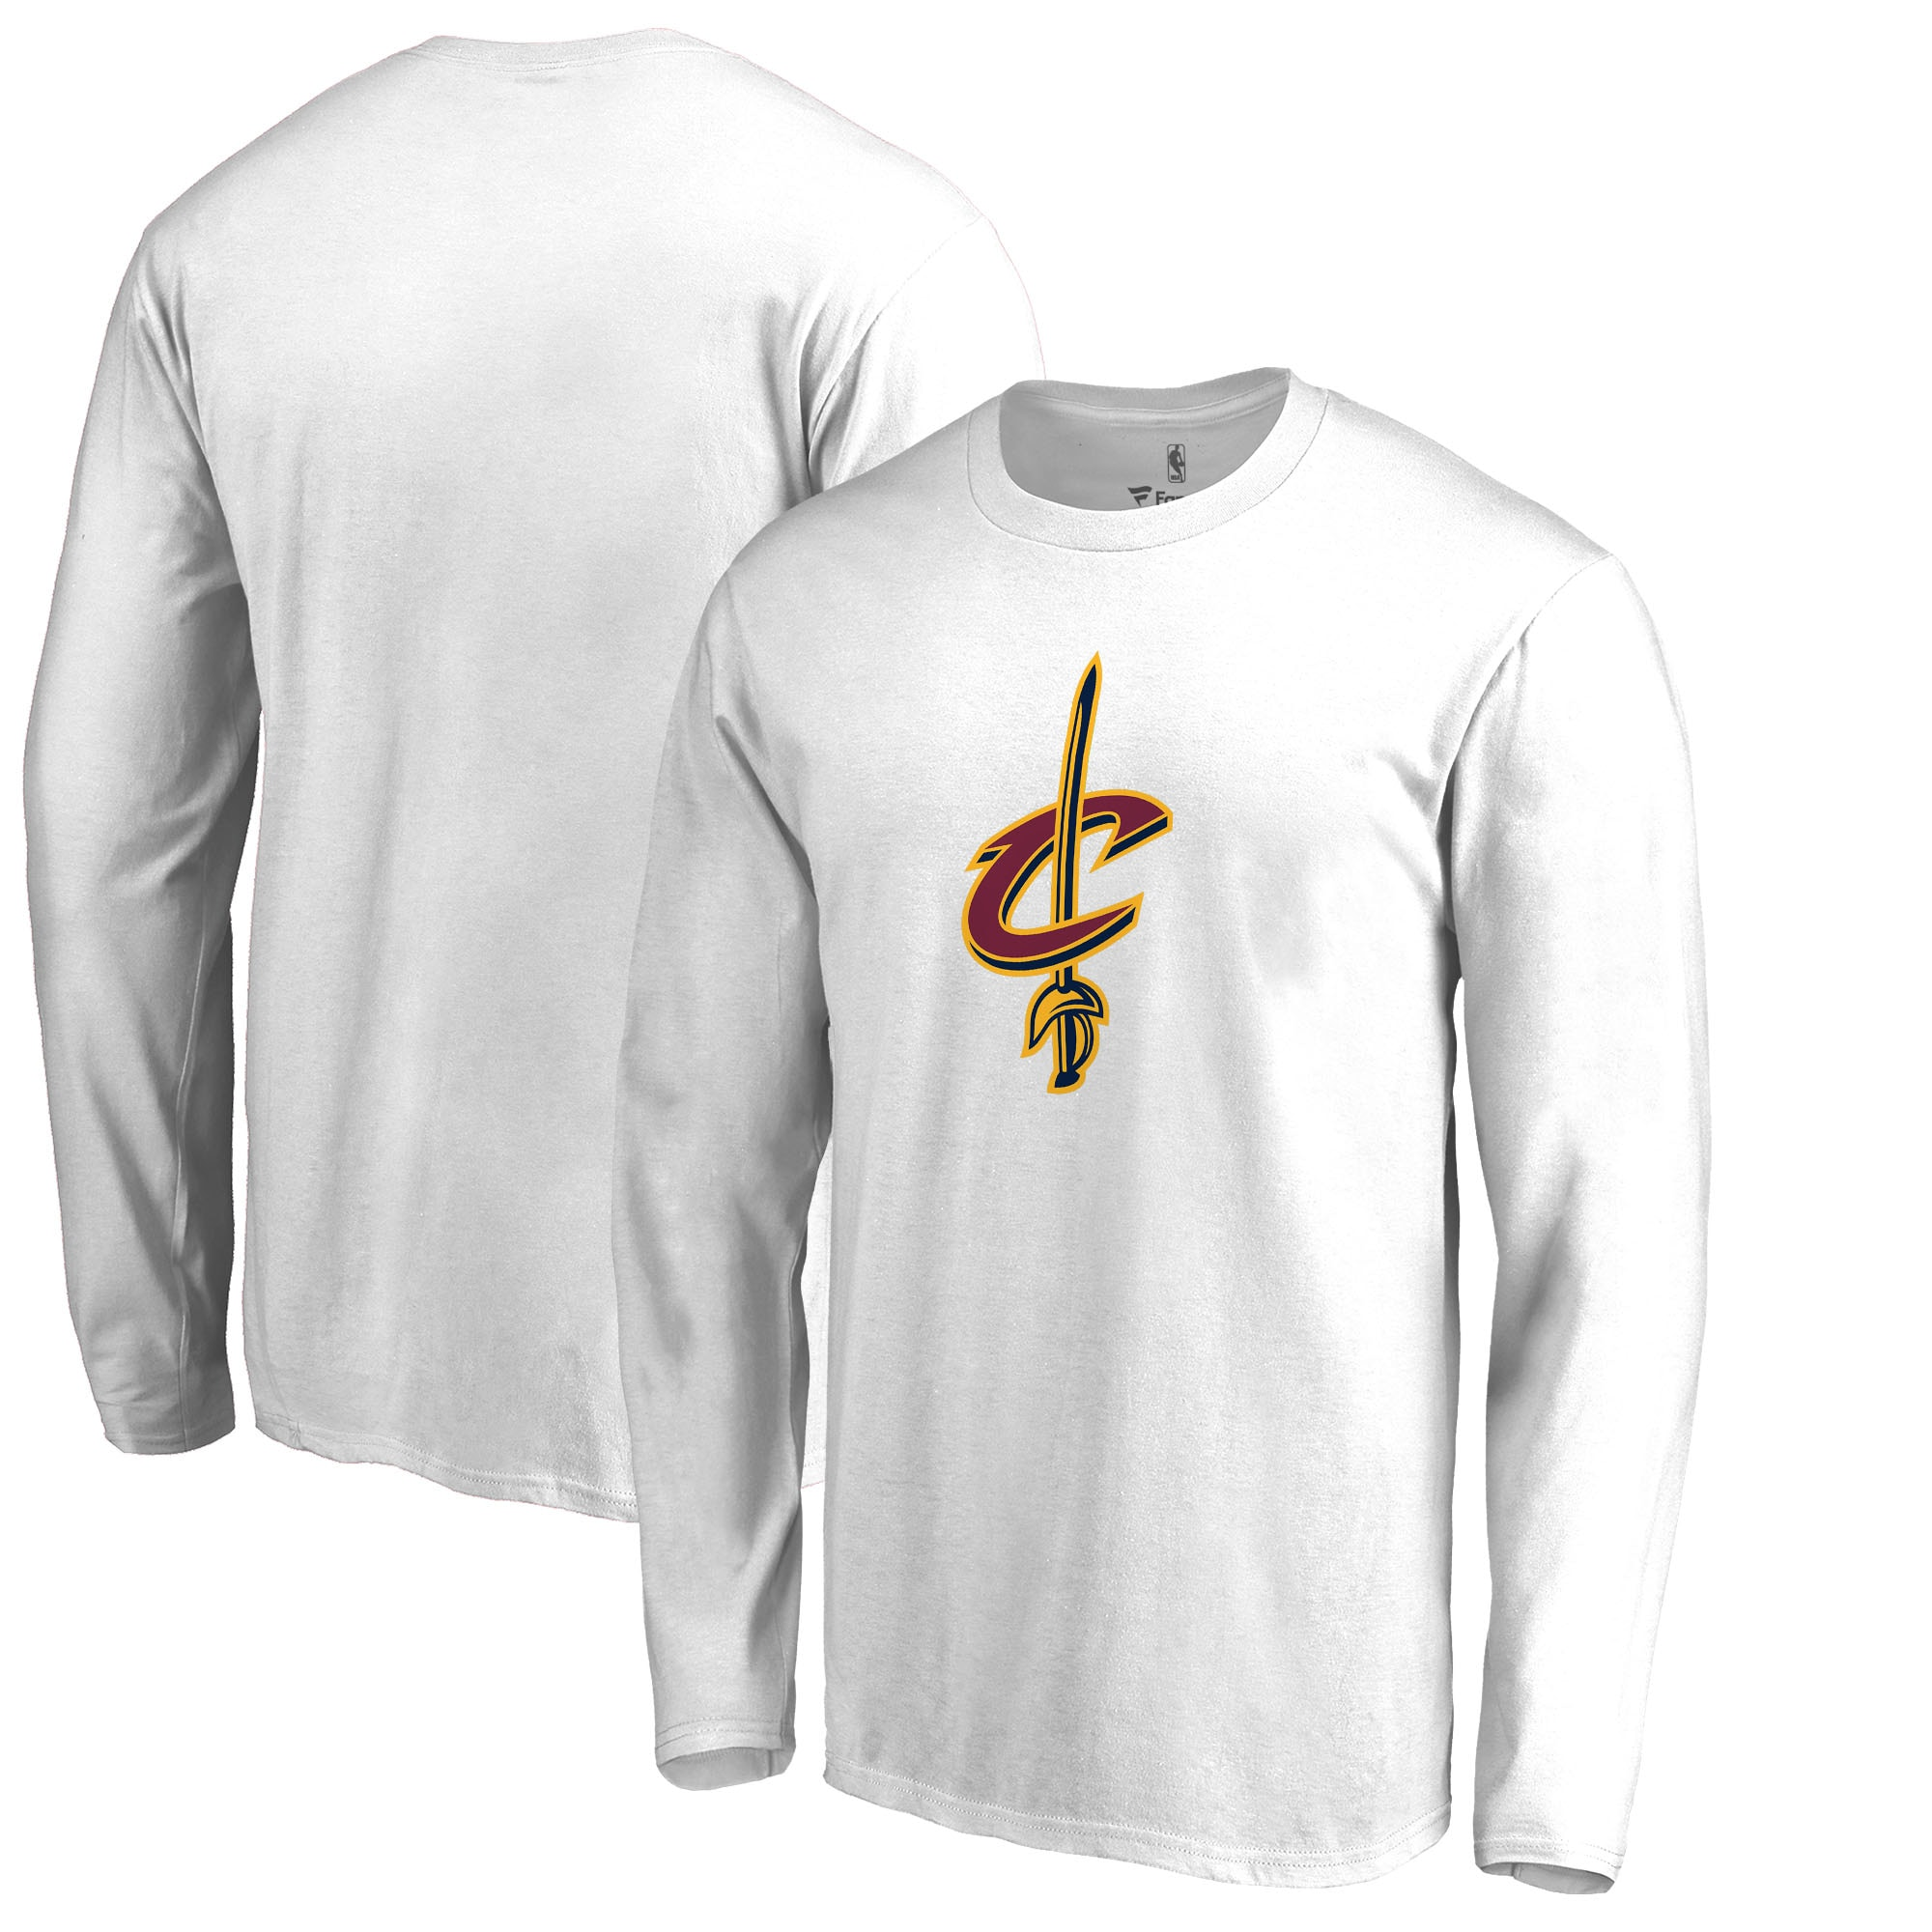 Cleveland Cavaliers Fanatics Branded Primary Team Logo Long Sleeve T-Shirt - White